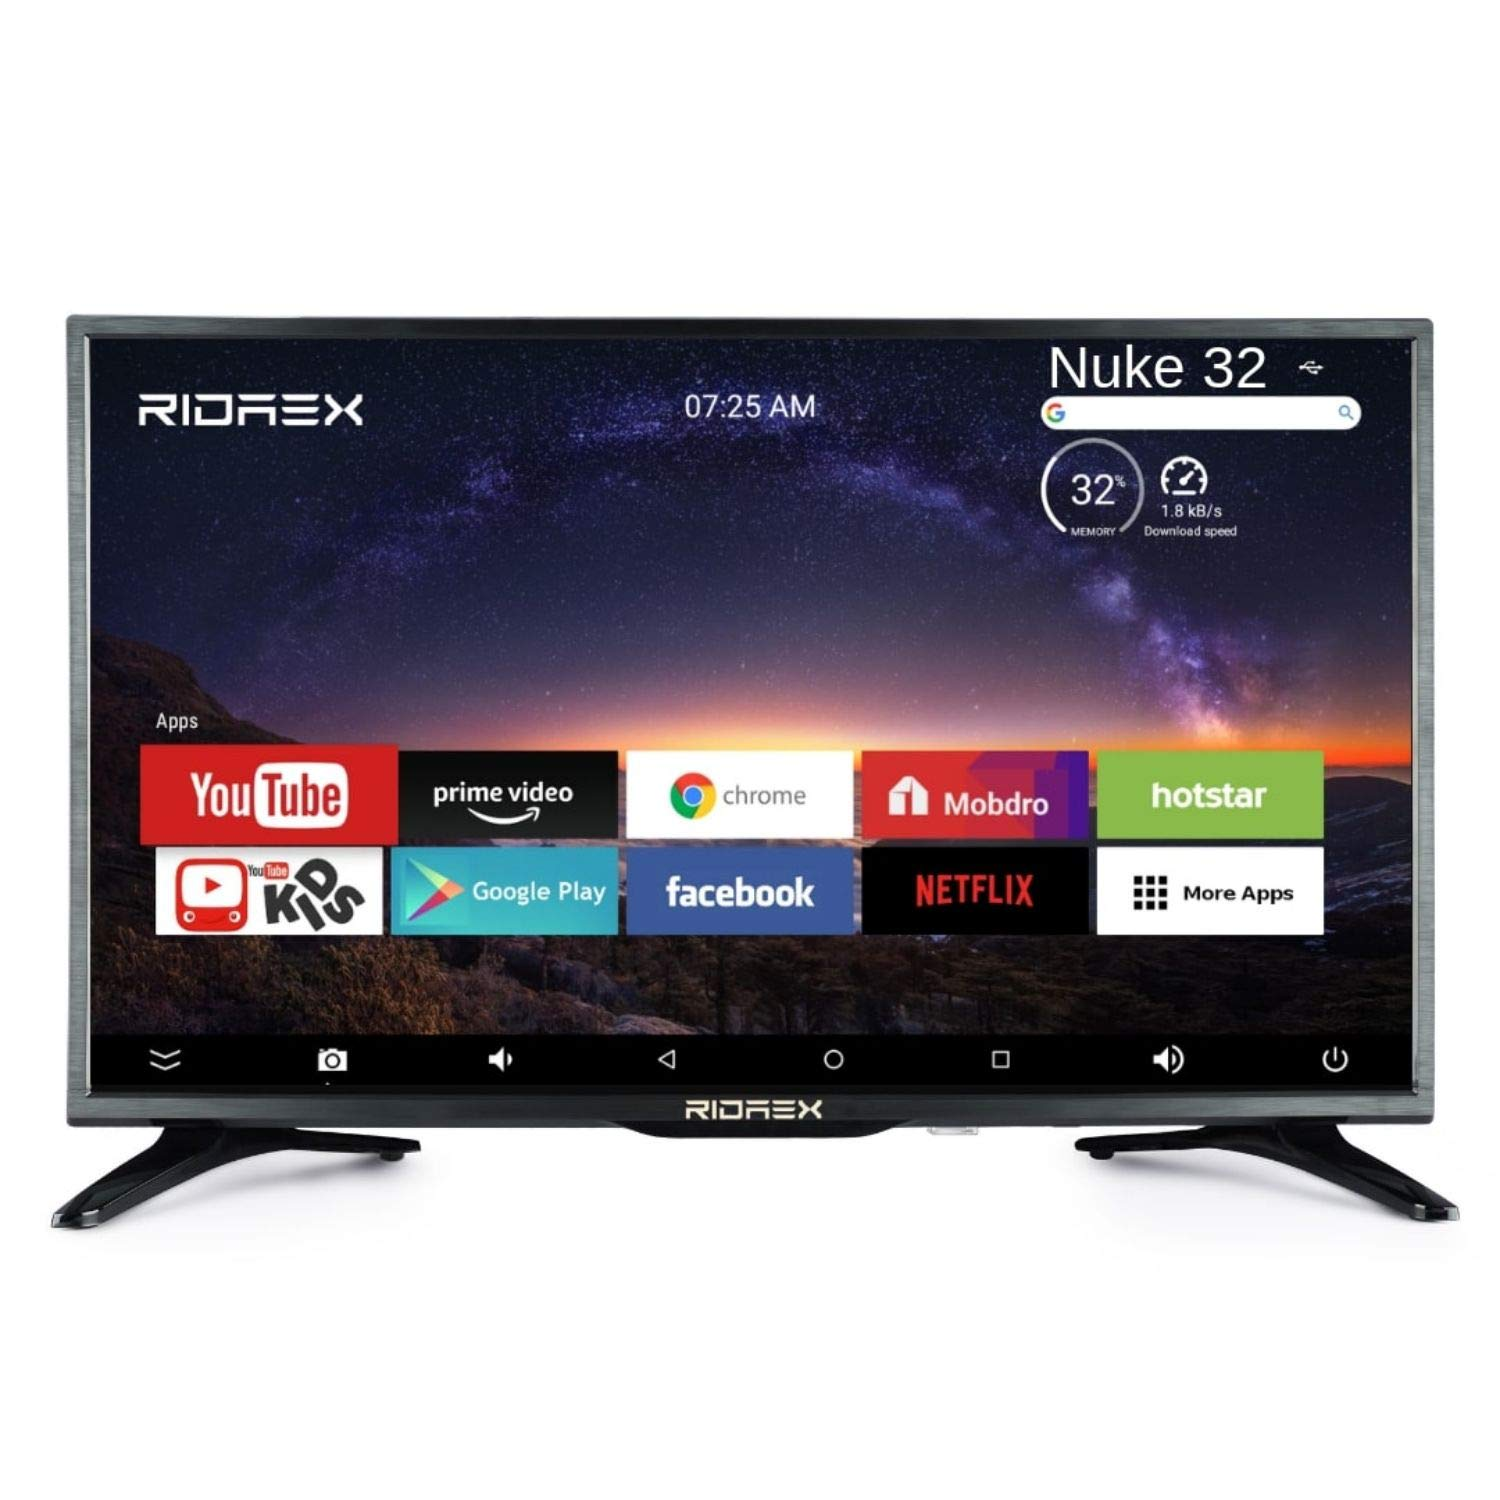 RIDAEX RE-1320 32 INCH ANDROID SMART TV - Reviews | Price ...